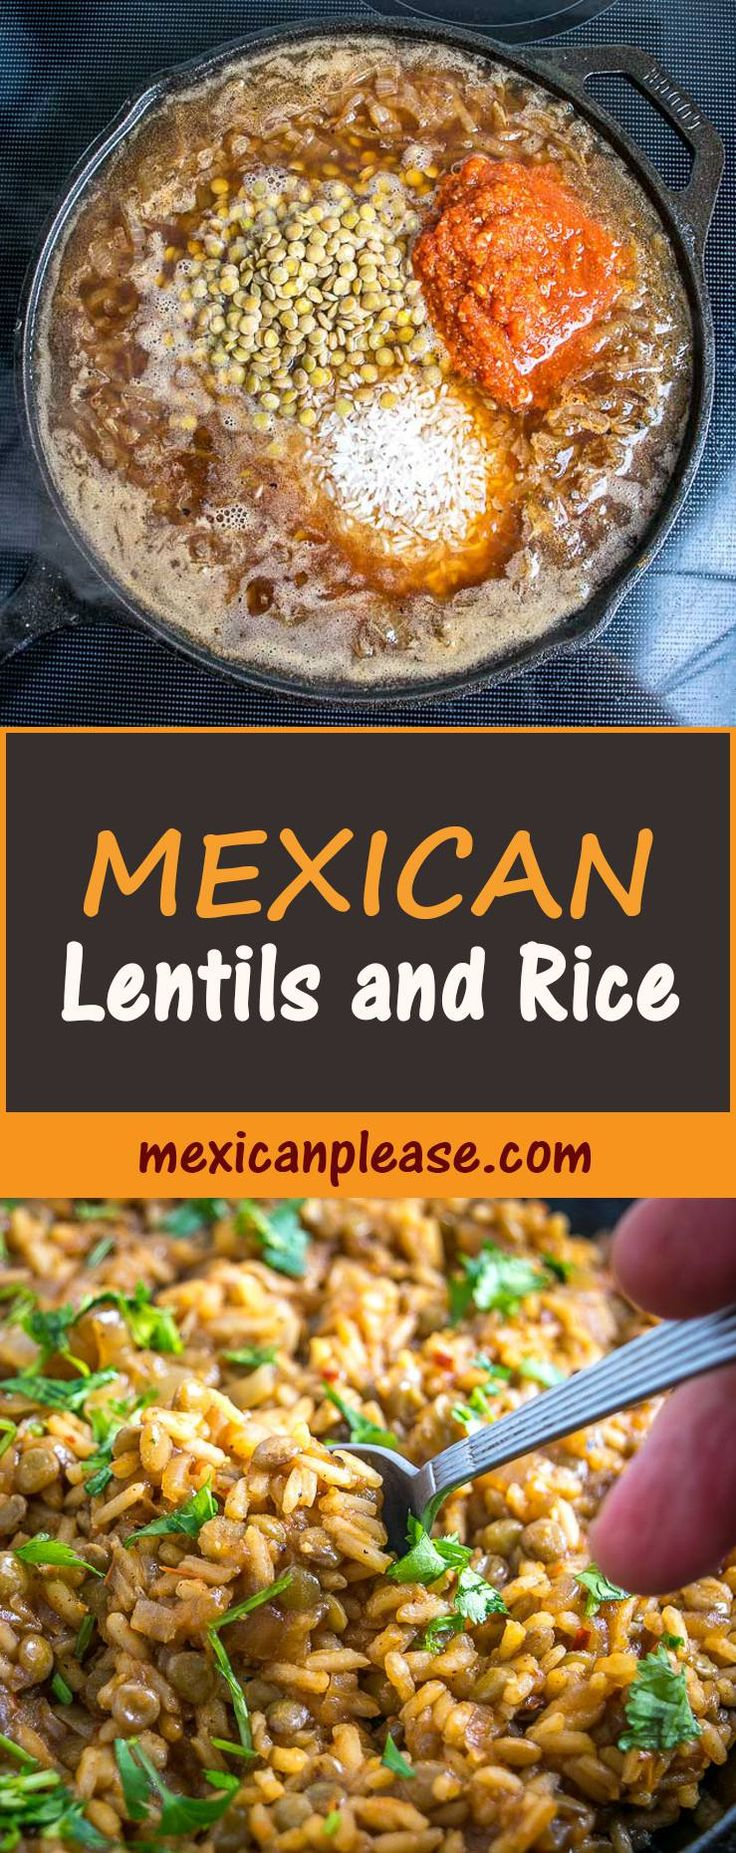 Here's an easy way to make a delicious Lentils and Rice dish.  You can go easy on the chipotle if you want a milder version.  We used some homemade veggie stock and it was delish!  #mexican #lentils #rice mexicanplease.com